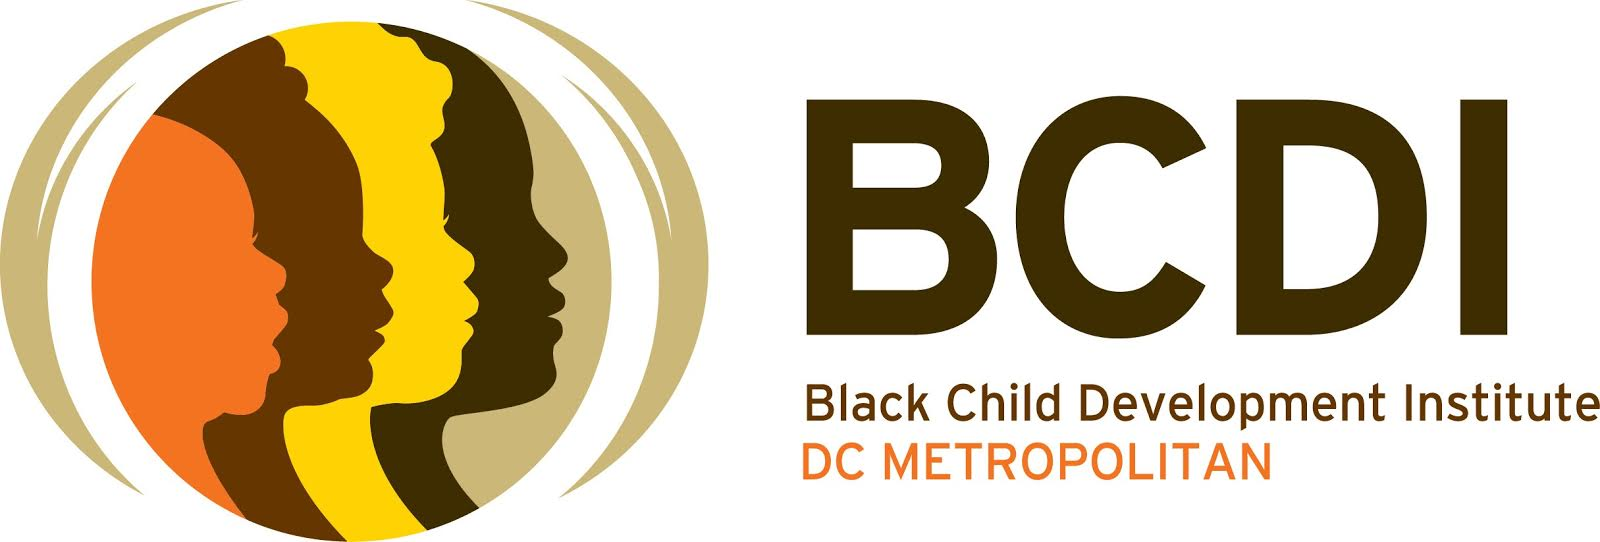 Black Child Development Institute